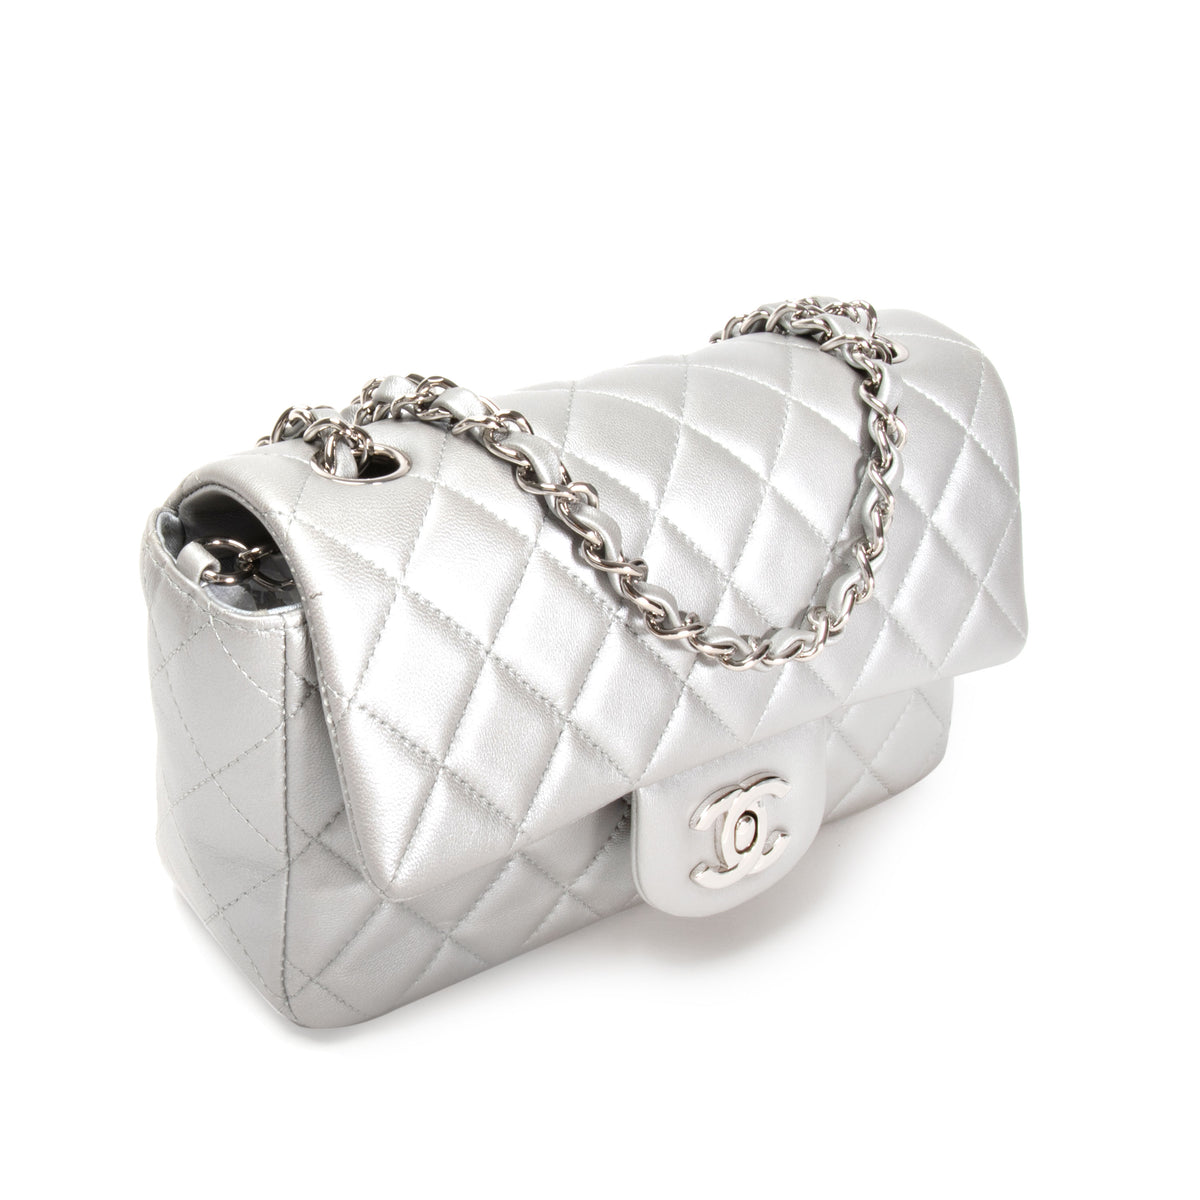 Chanel Silver Quilted Lambskin New Mini Classic Flap Bag